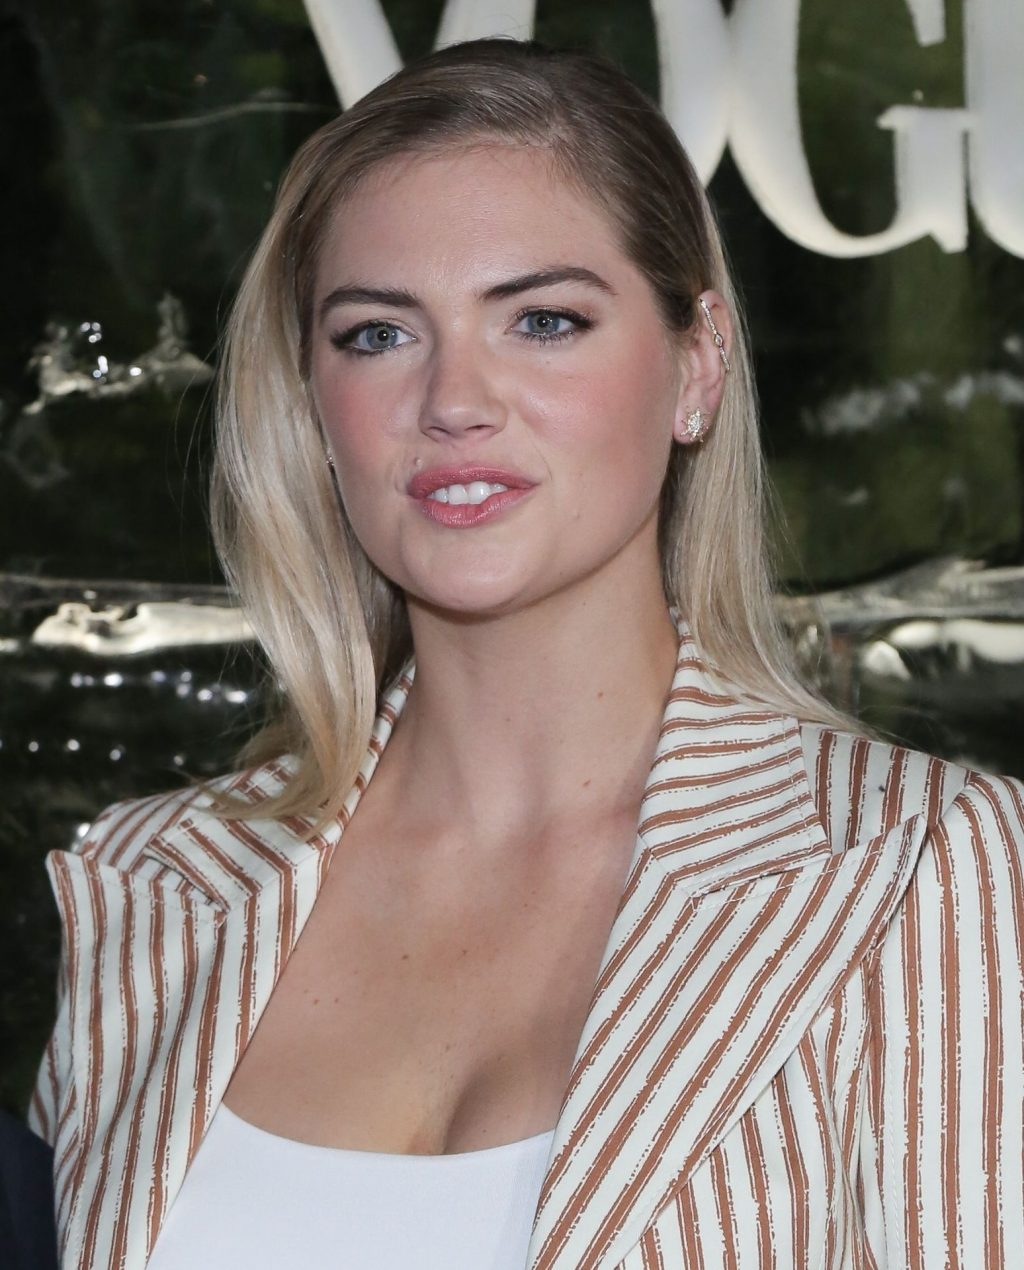 Kate Upton Sexy The Fappening Blog 16 1024x1270 - Kate Upton Attends Canada Goose And Vogue Cocktails & Conversations (104 Photos)